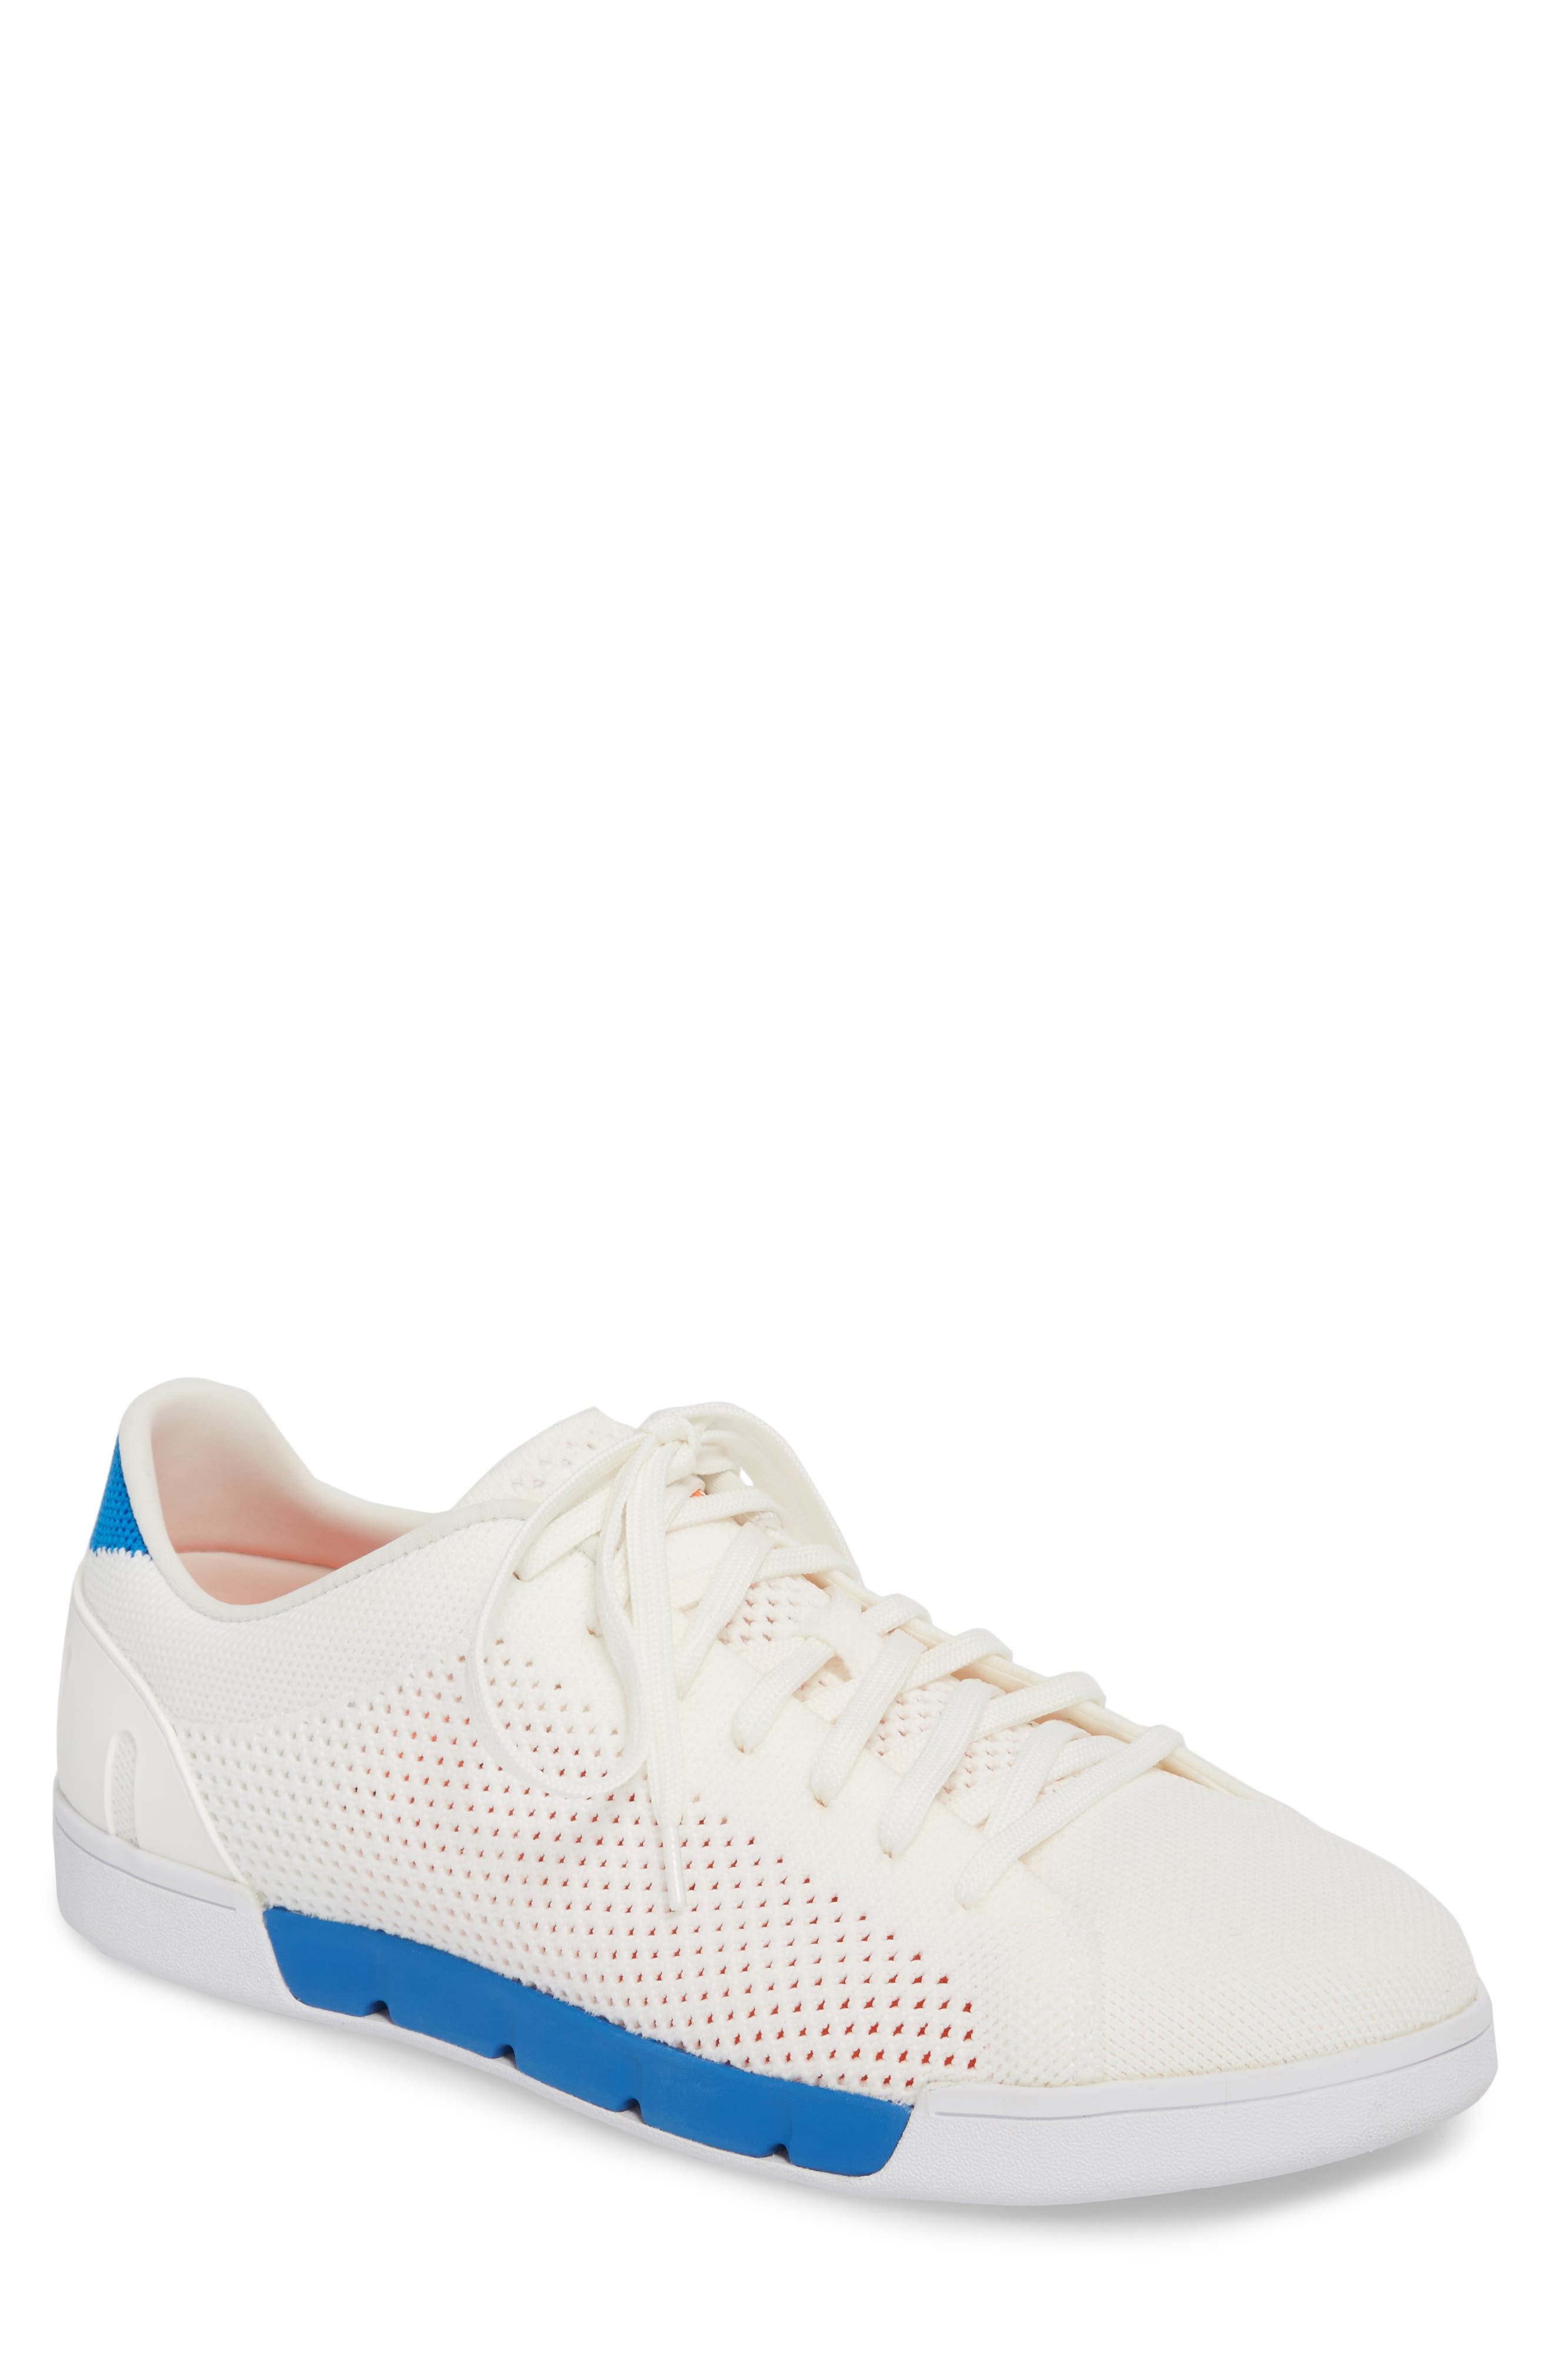 Swims Breeze Tennis Washable Knit Sneaker, White